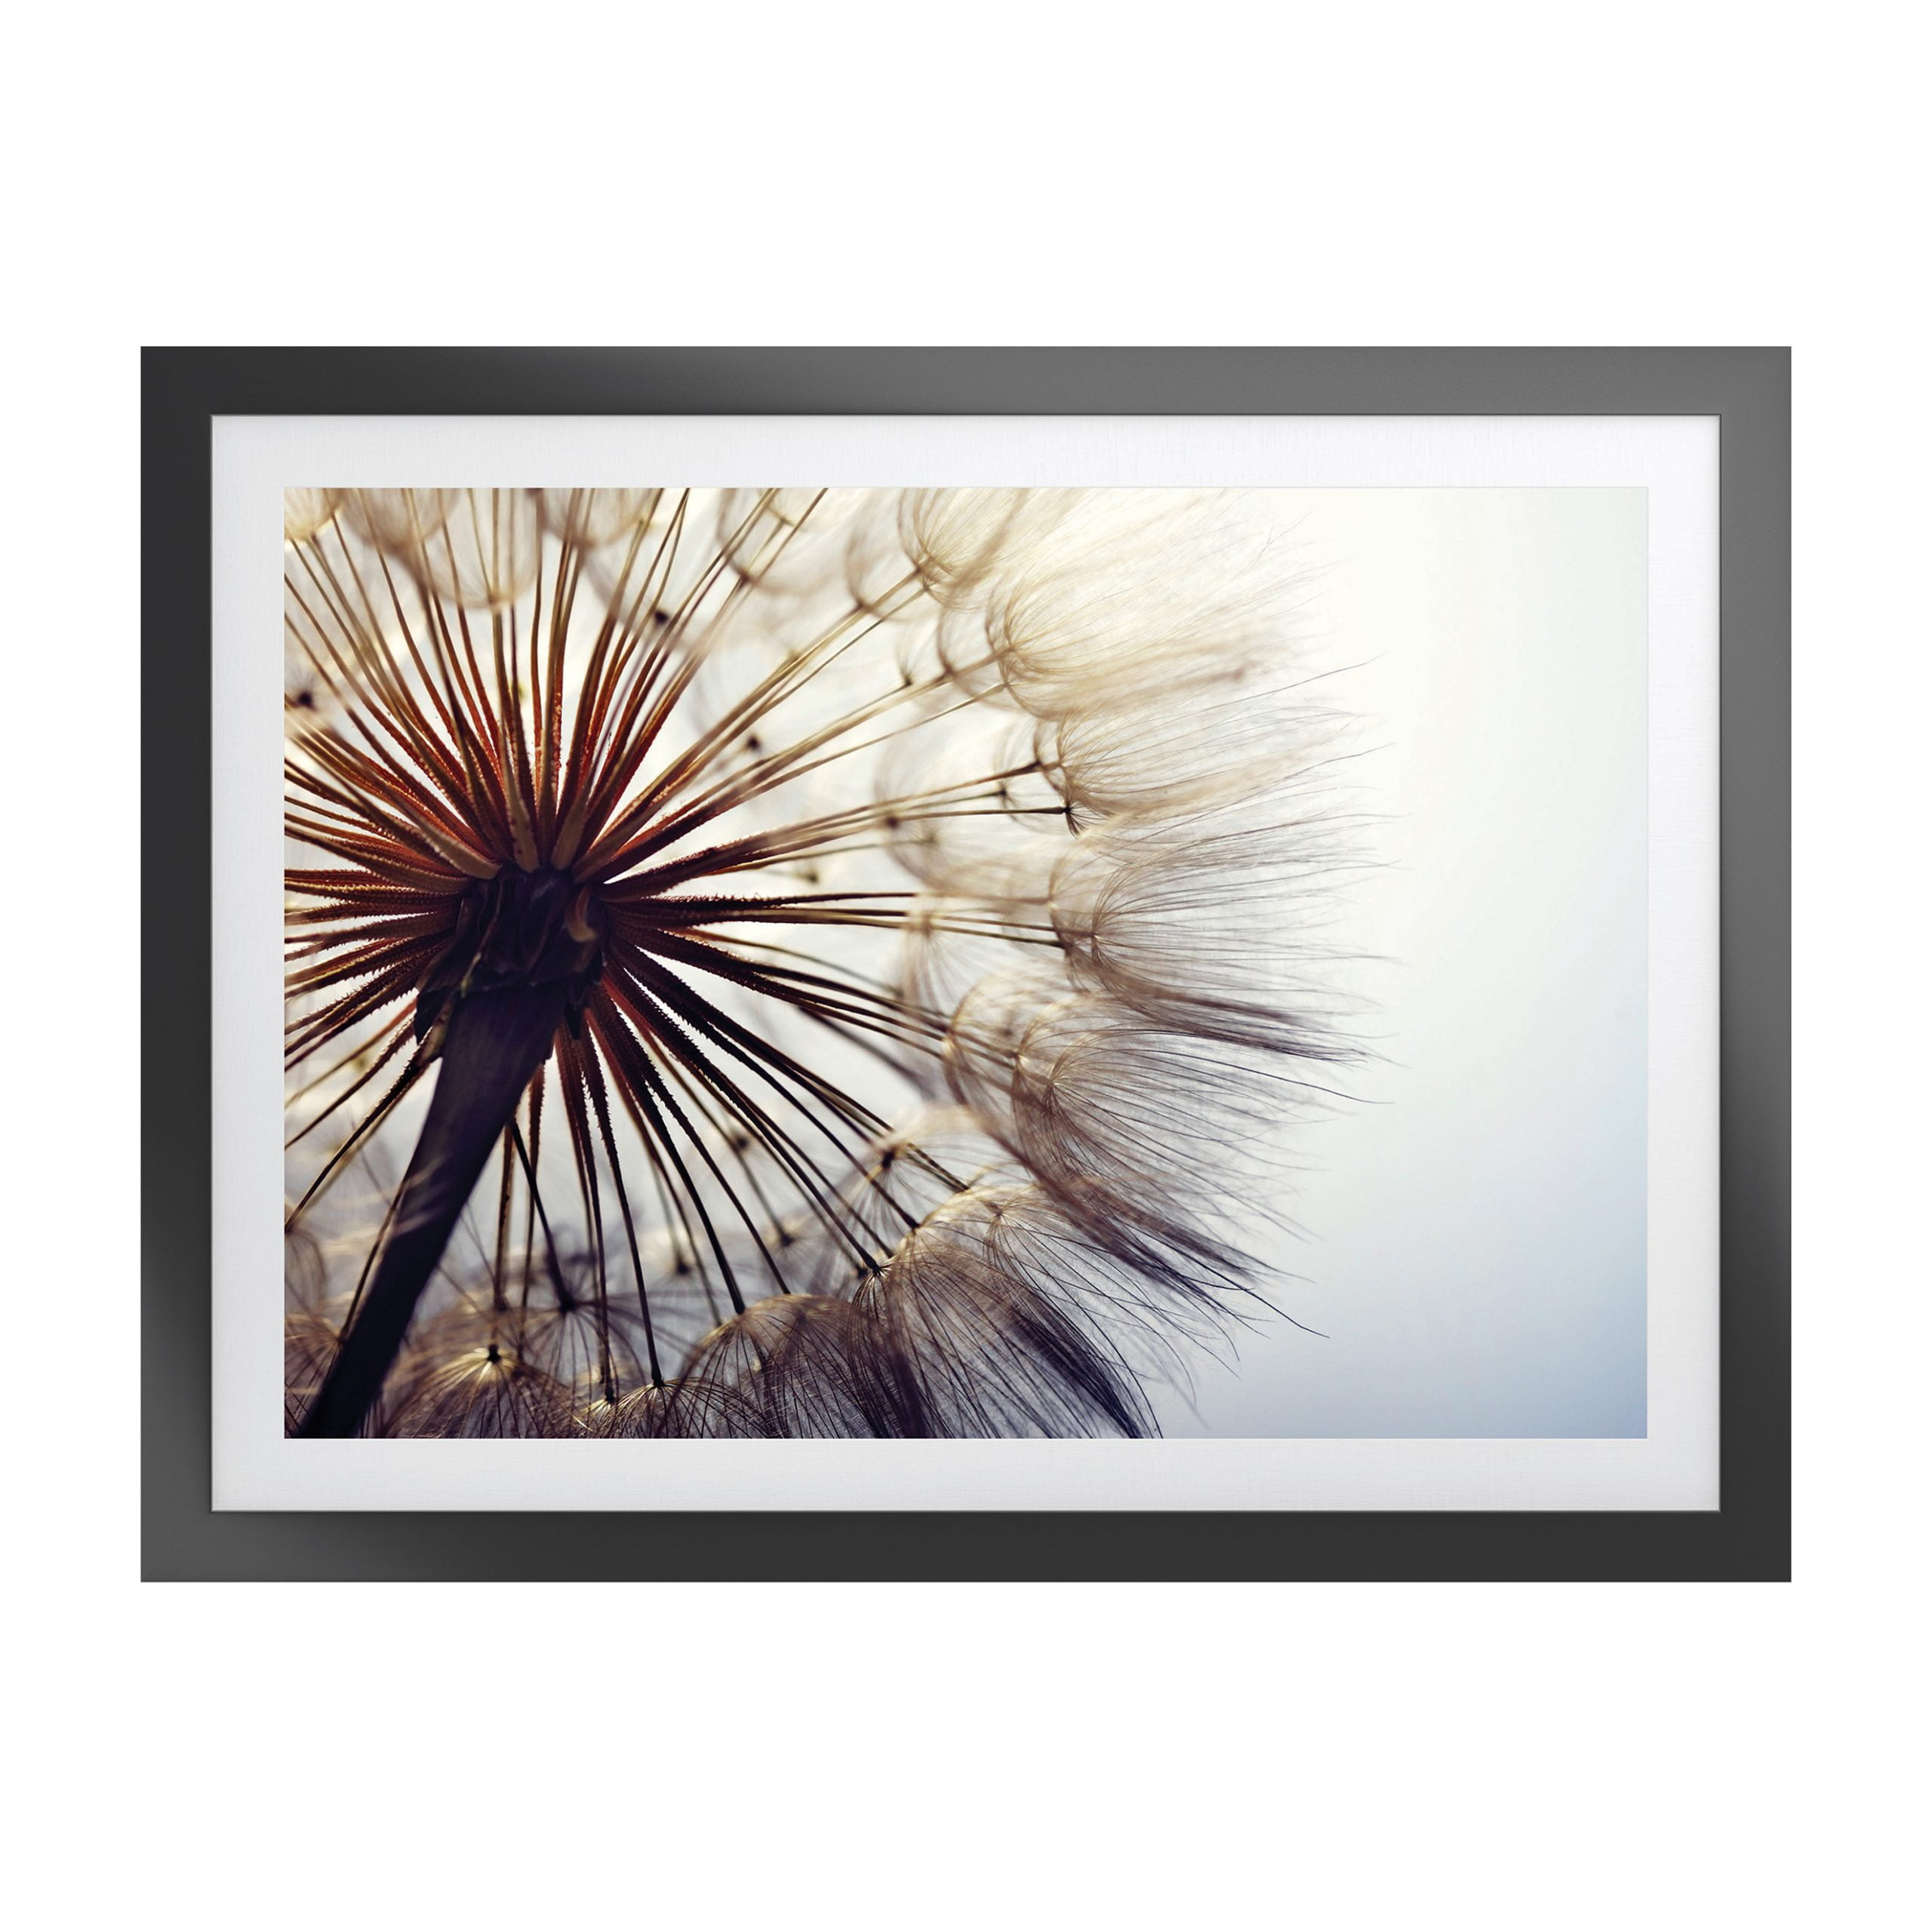 Woodspring Artwork with Fornari Black Frame